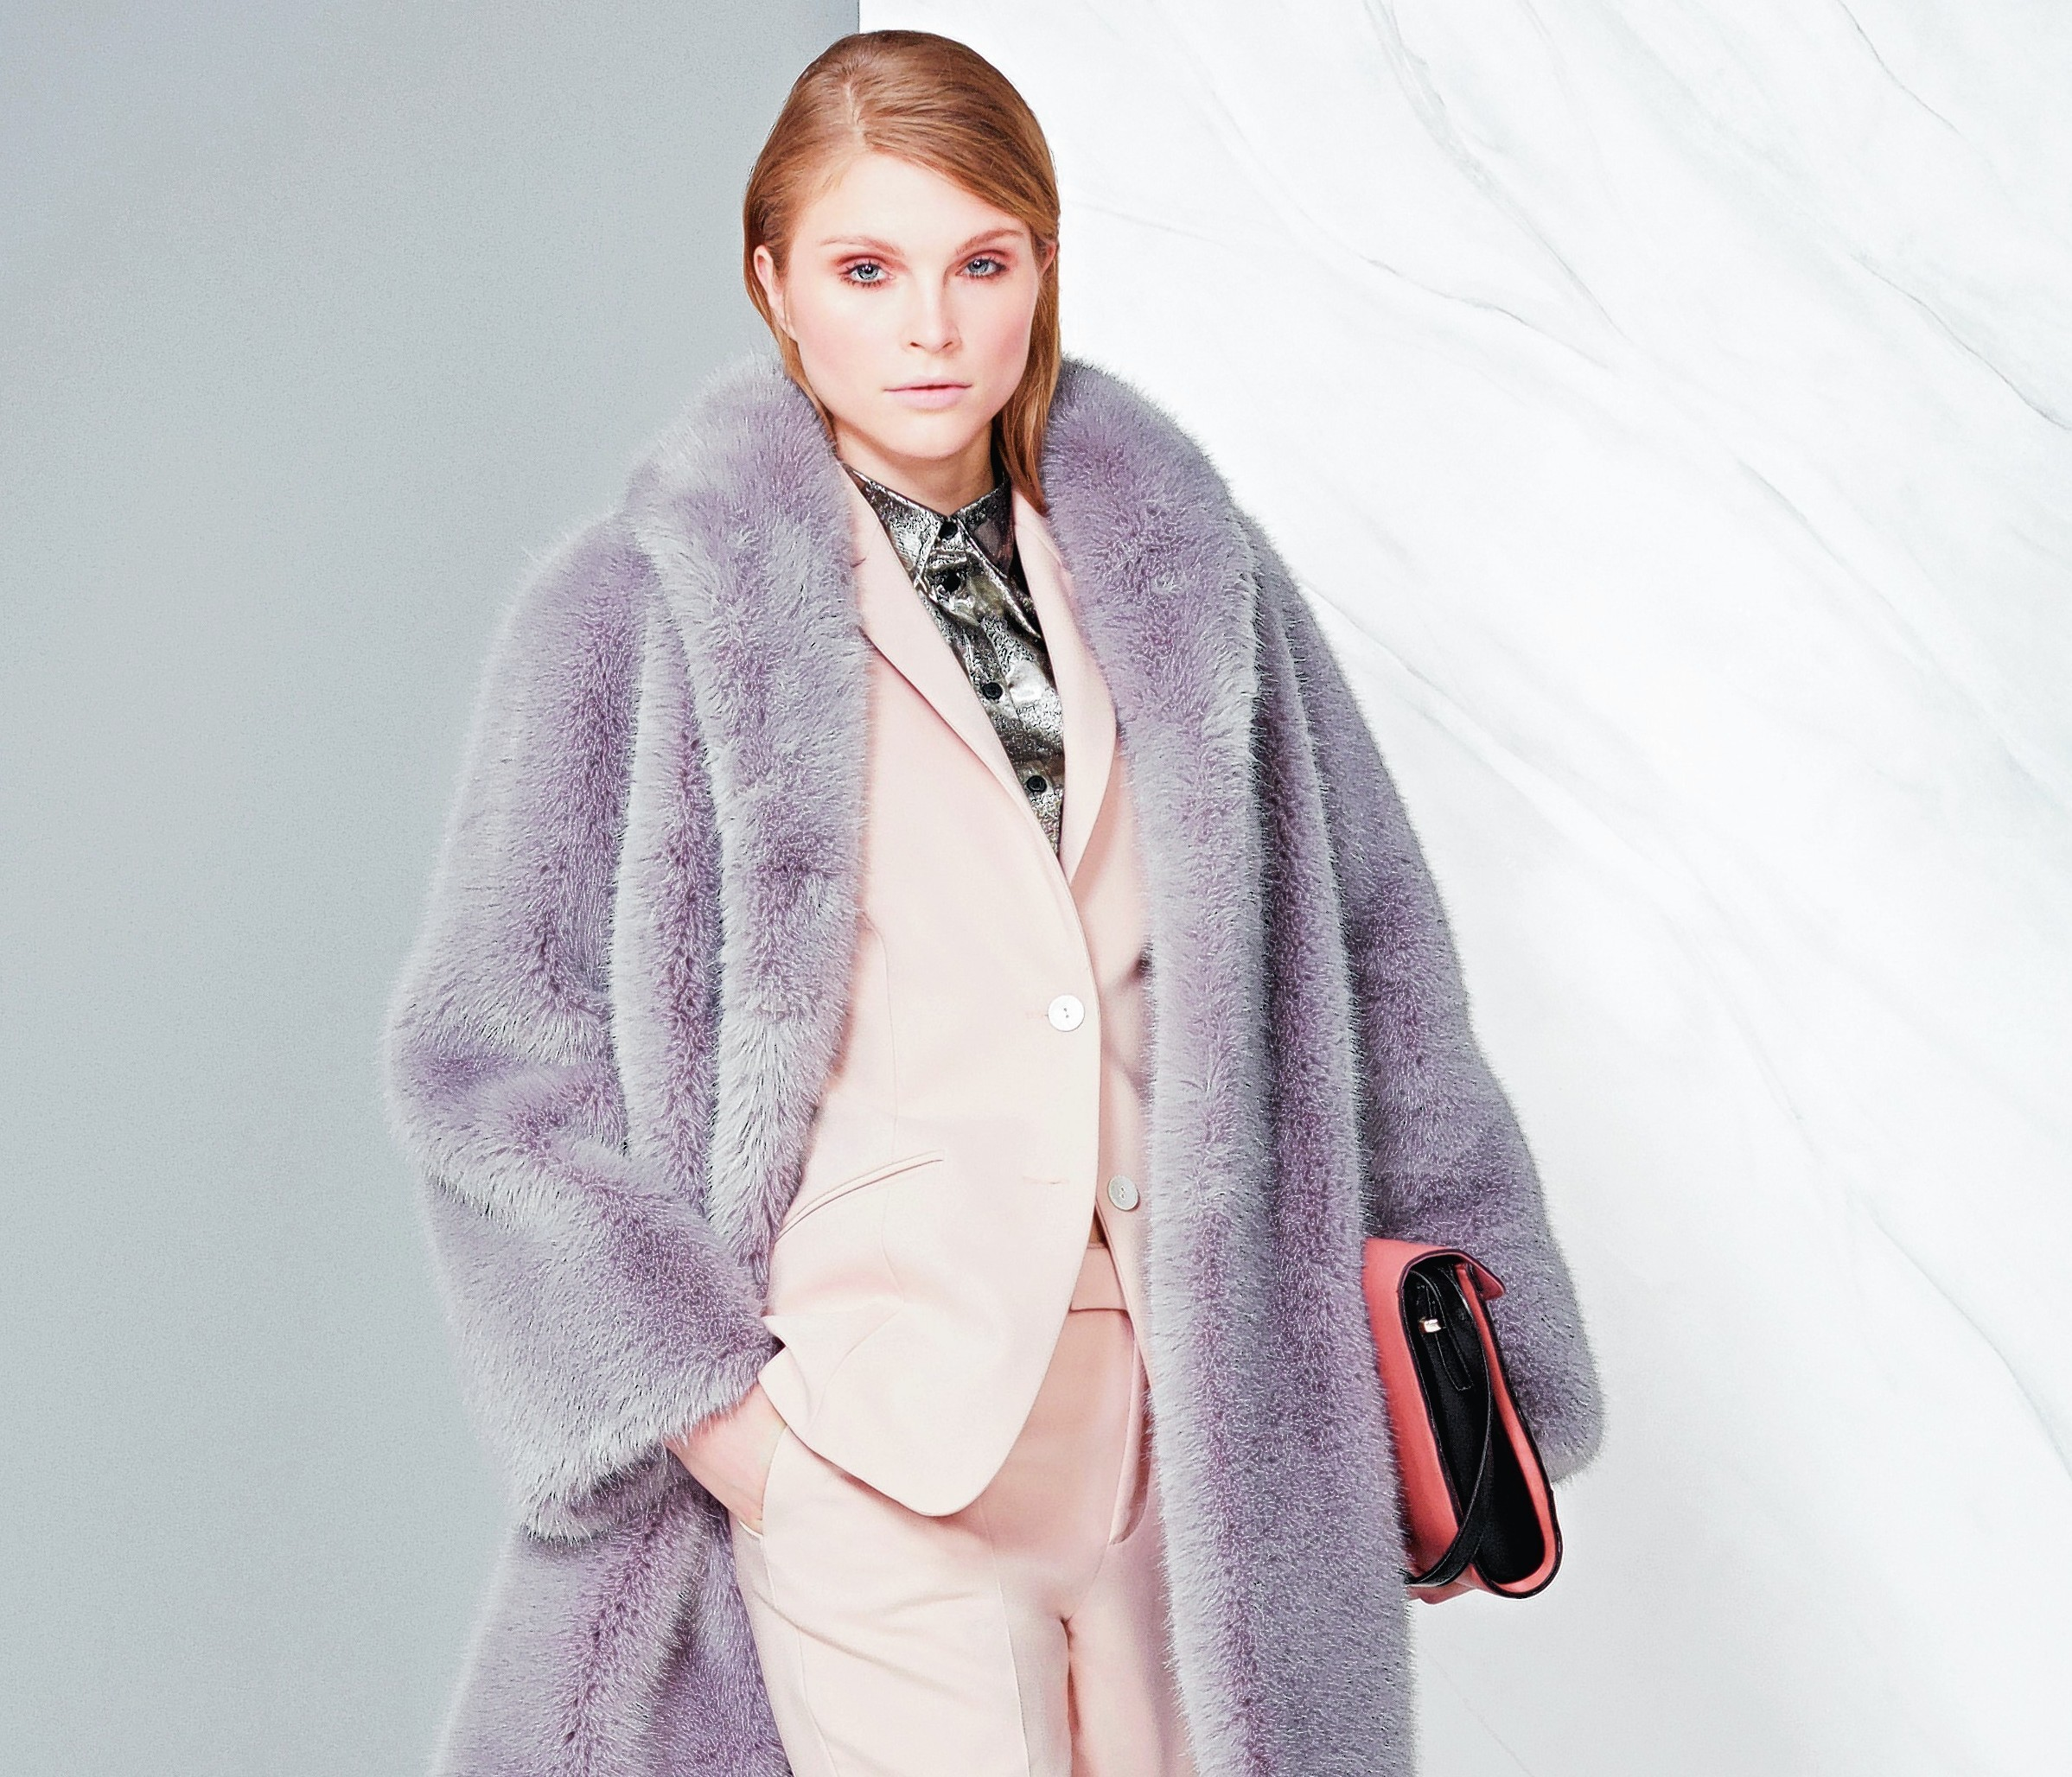 Twiggy faux fur coat, £99; Limited jacket, £59; Limited trousers, £39.50; Limited shirt, £35; bag, £29.50; all Marks & Spencer